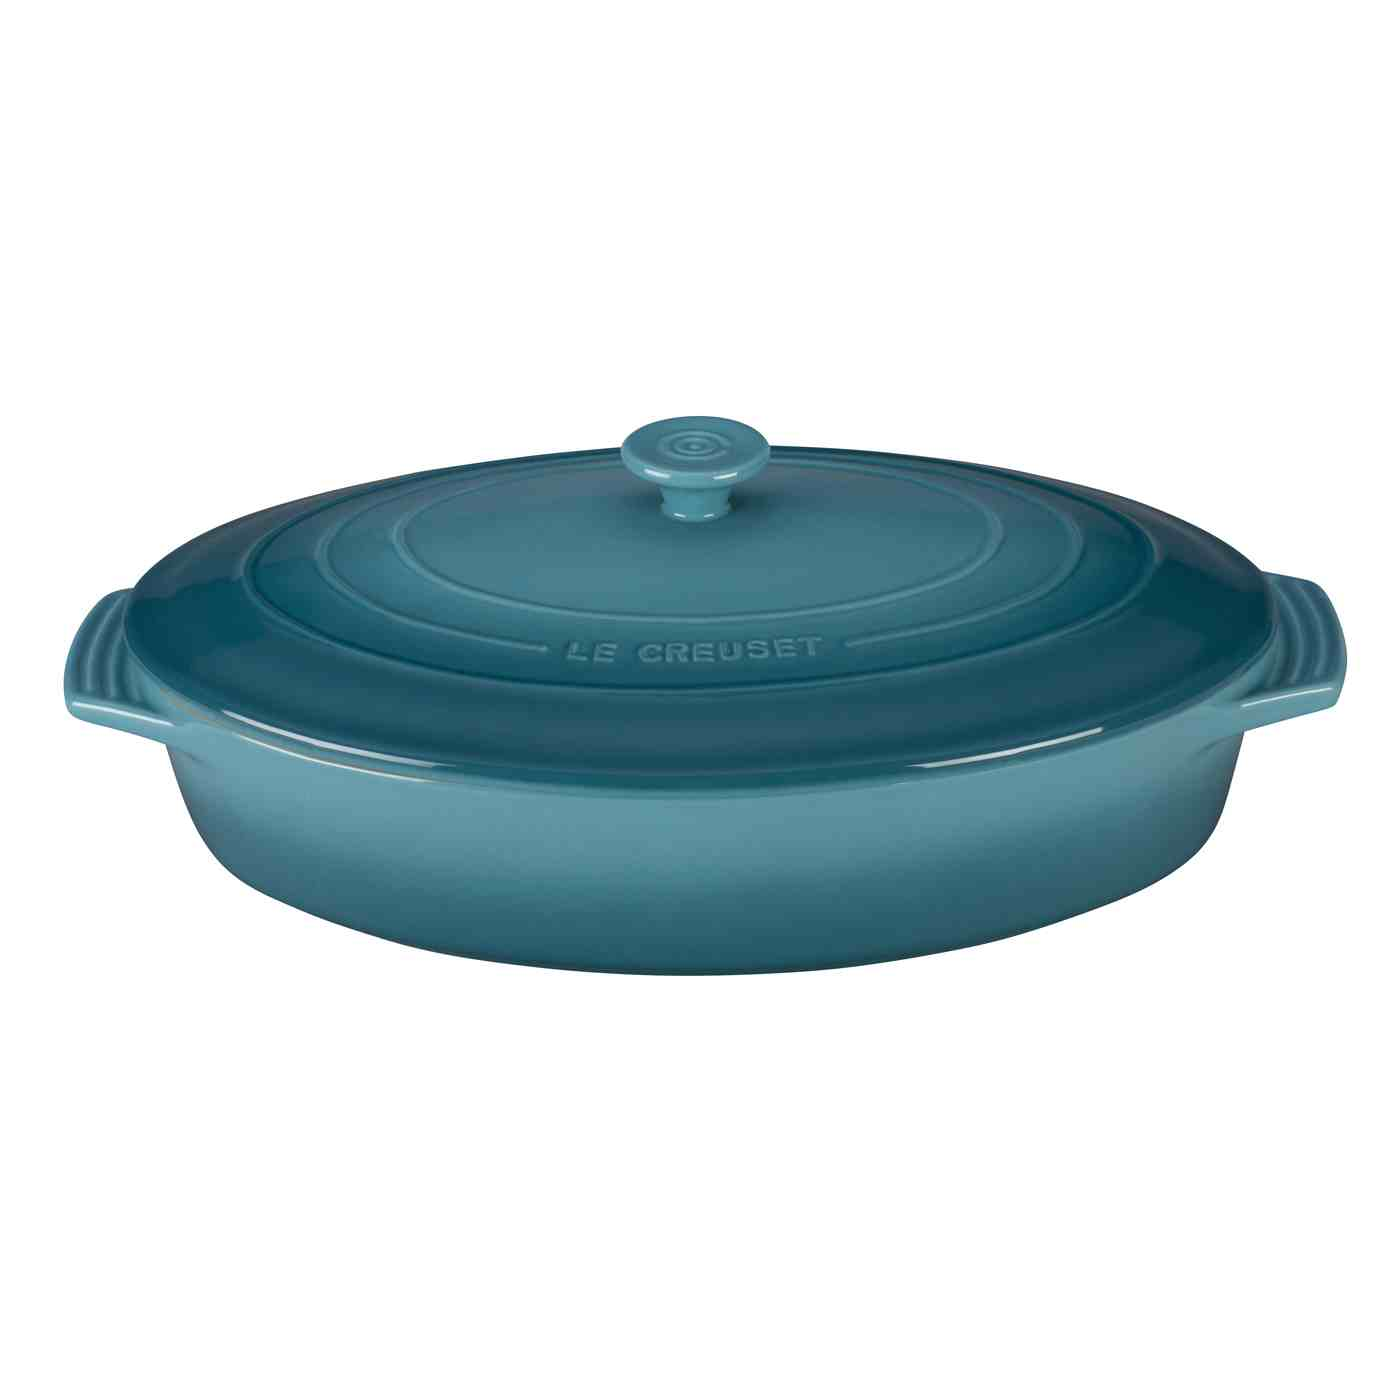 Le Creuset Oval Casserole with Lid 3.5L | Caribbean